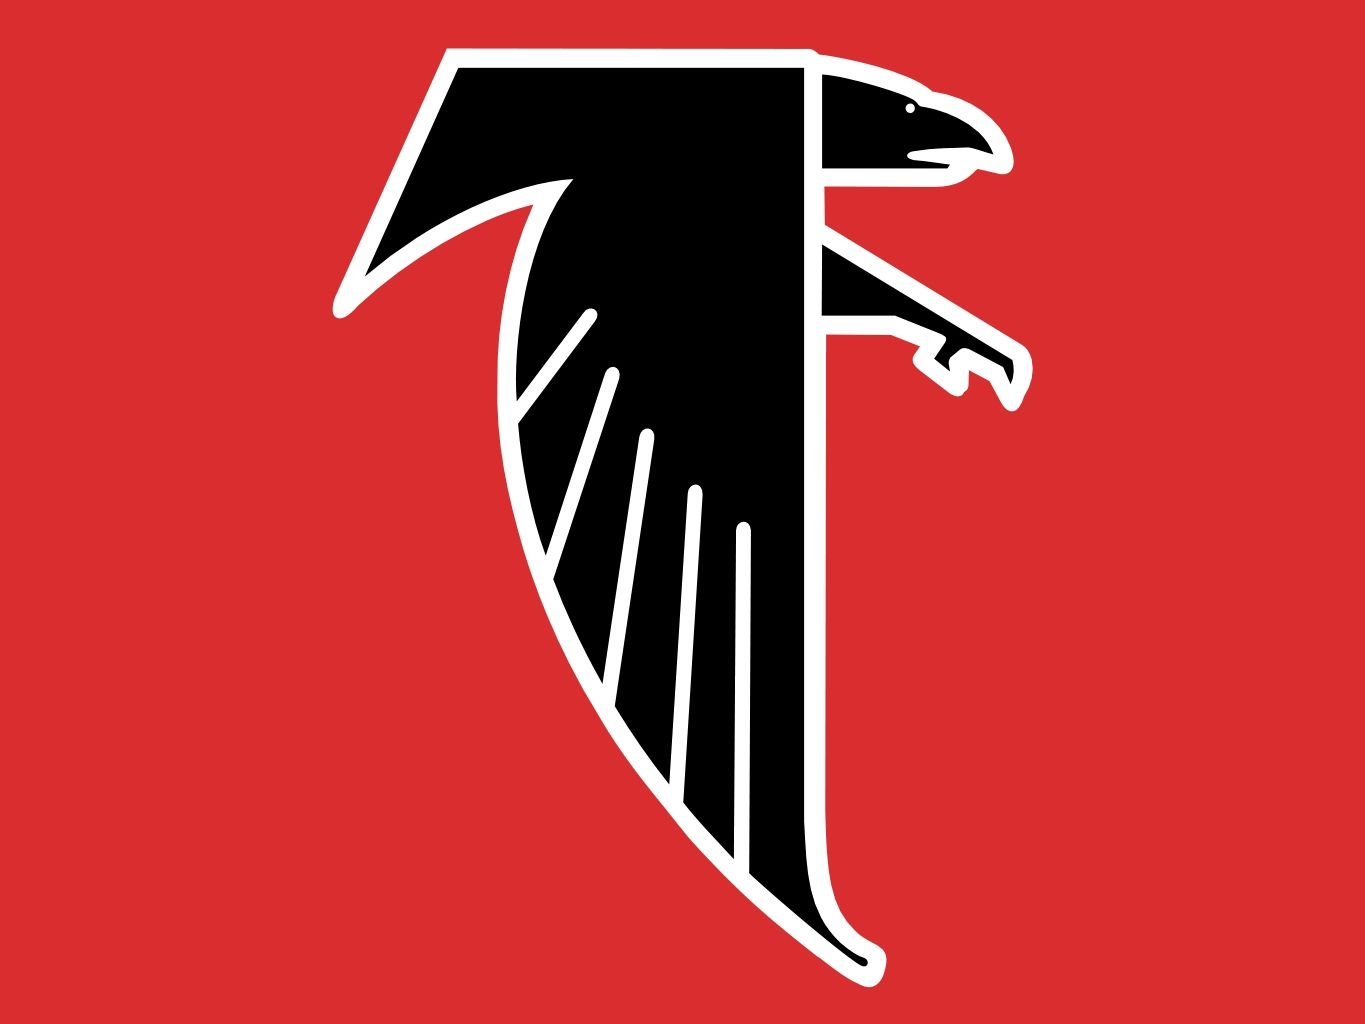 Atlanta Falcons Old Logo Jpg 1365 1024 Atlanta Falcons Nfl Teams Logos Falcons Football